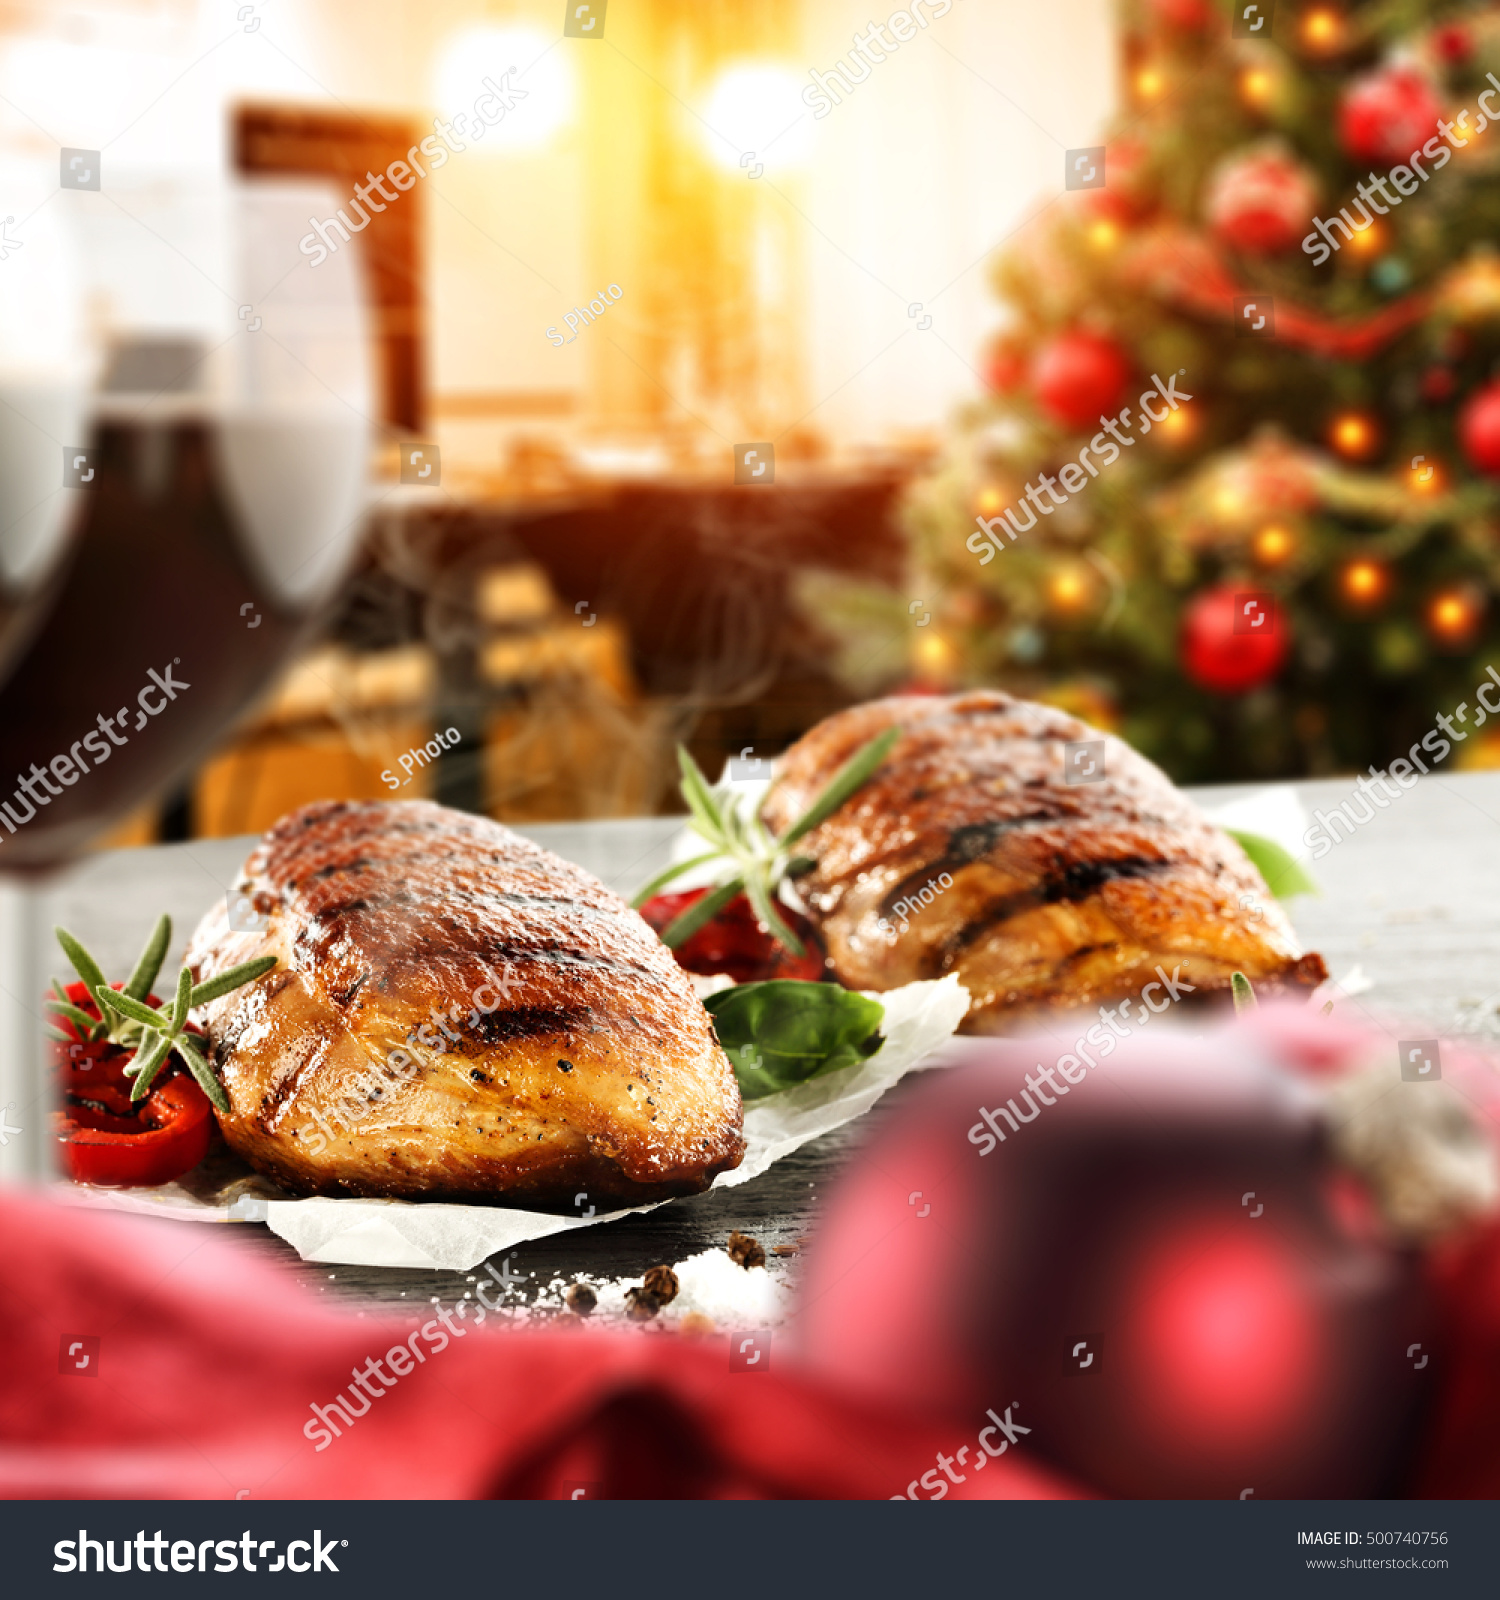 Kitchen Table With Food: Christmas Food On Table Kitchen Interior Stock Photo 500740756